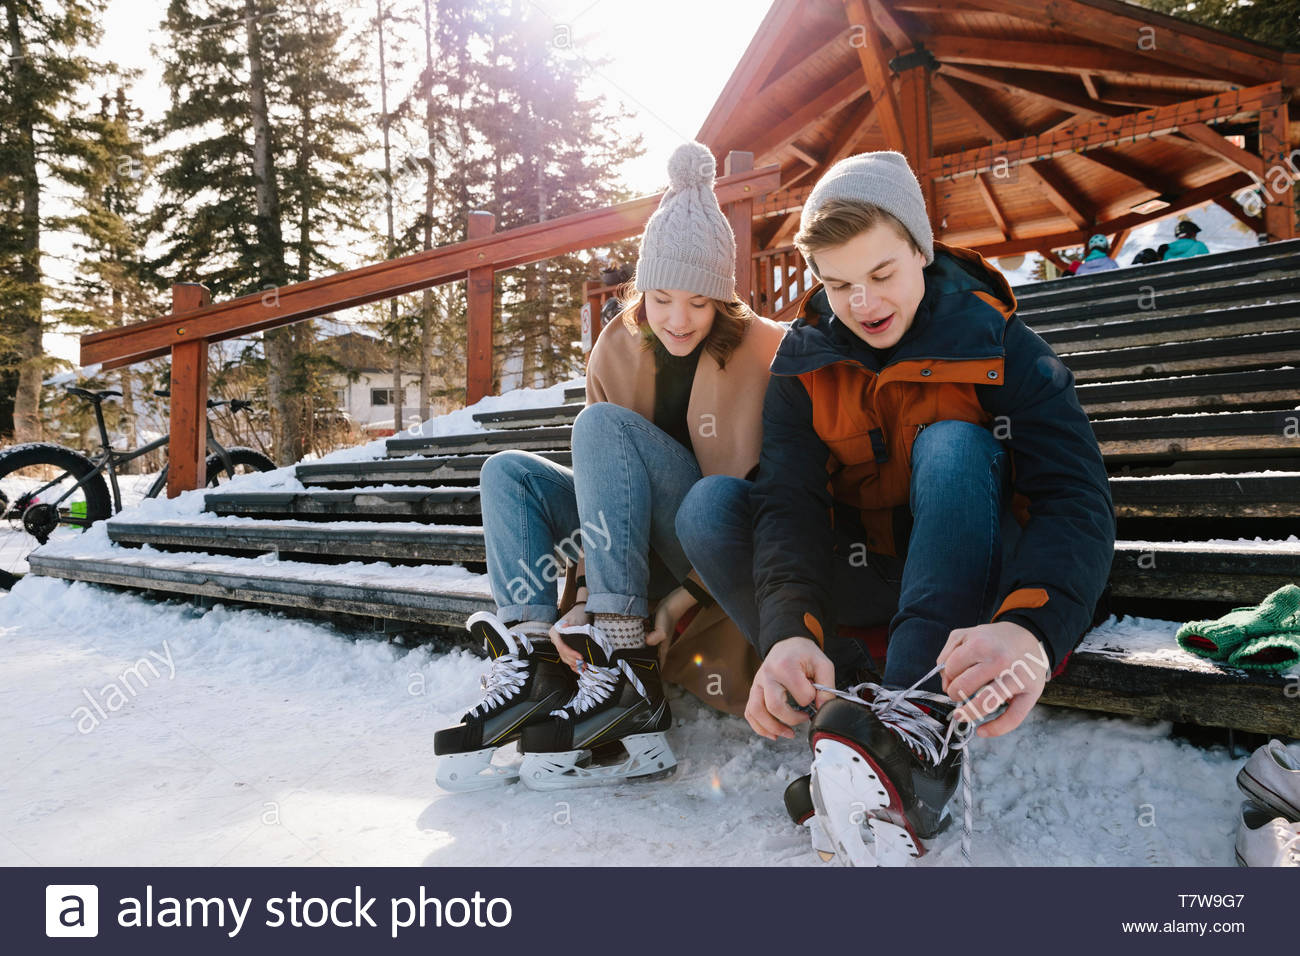 Young couple tying ice skates on snowy steps - Stock Image